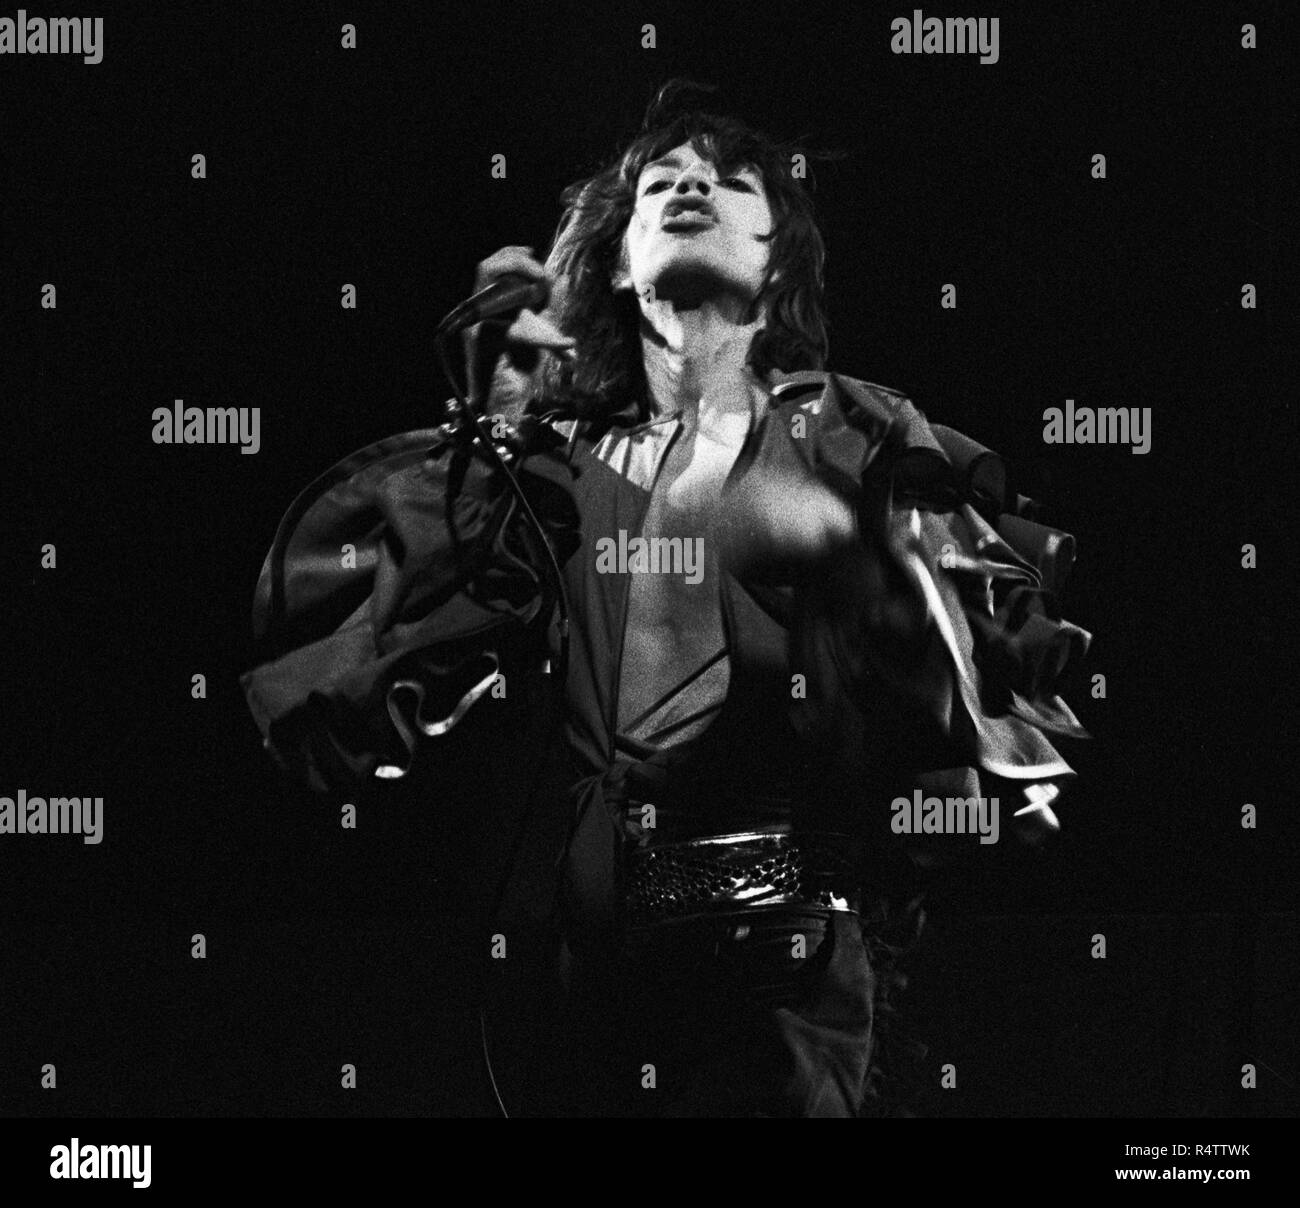 FRANKFURT, GERMANY: Mick Jagger from The Rolling Stones perform live on stage at the Festhalle in Frankfurt, Germany on April 28 1976 as part of their European tour (Photo by Gijsbert Hanekroot) *** Local Caption *** Rolling Stones, Mick Jagger Stock Photo